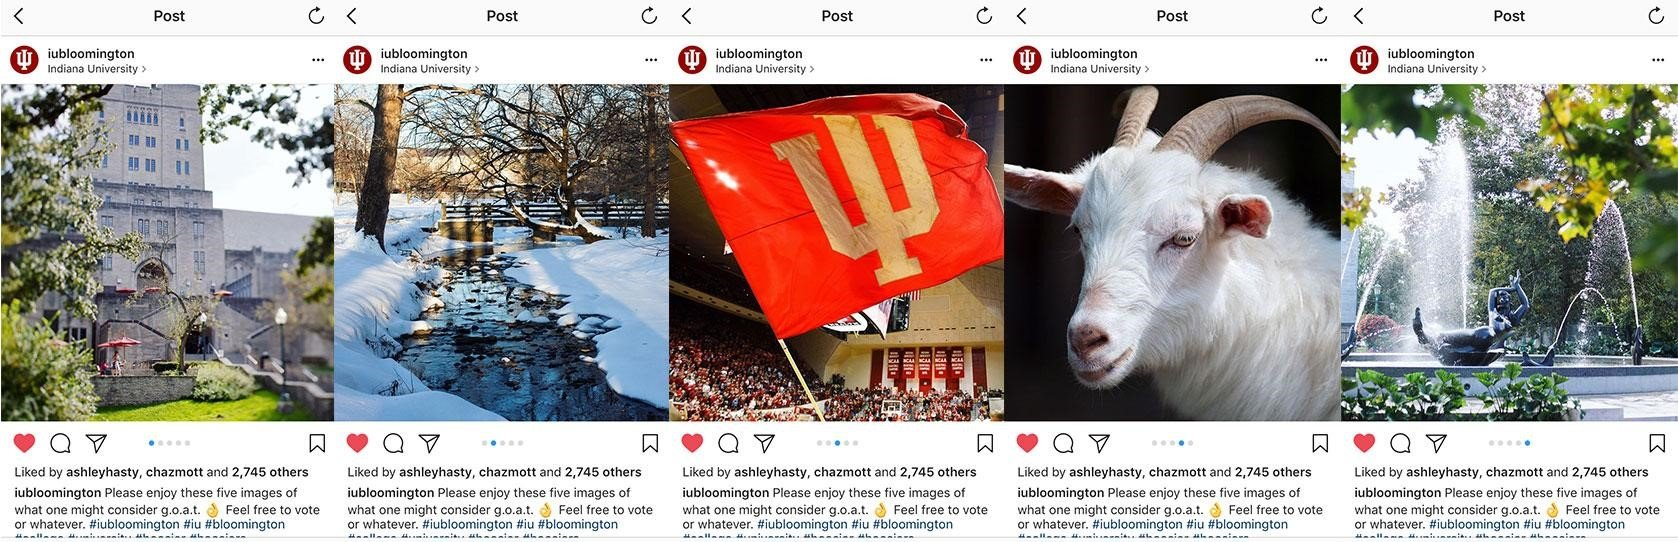 Indiana University Instagram slideshow